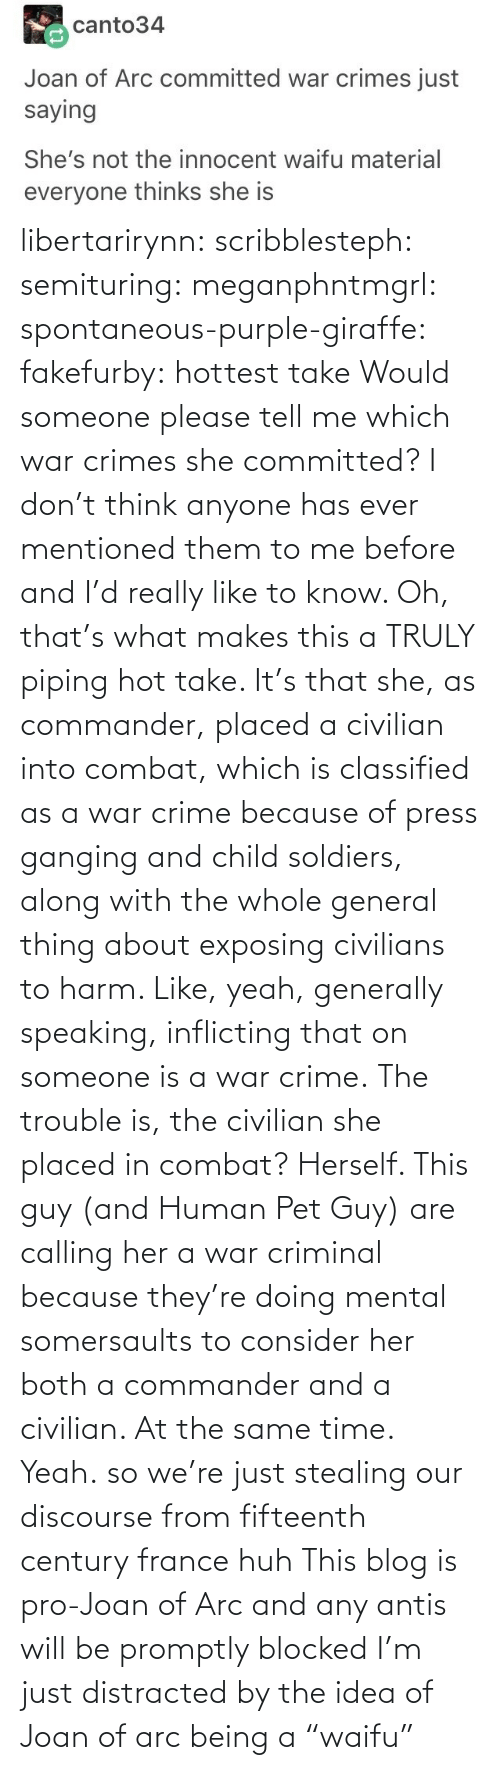 "idea: libertarirynn: scribblesteph:  semituring:  meganphntmgrl:  spontaneous-purple-giraffe:   fakefurby: hottest take  Would someone please tell me which war crimes she committed? I don't think anyone has ever mentioned them to me before and I'd really like to know.    Oh, that's what makes this a TRULY piping hot take. It's that she, as commander, placed a civilian into combat, which is classified as a war crime because of press ganging and child soldiers, along with the whole general thing about exposing civilians to harm. Like, yeah, generally speaking, inflicting that on someone is a war crime. The trouble is, the civilian she placed in combat? Herself.  This guy (and Human Pet Guy) are calling her a war criminal because they're doing mental somersaults to consider her both a commander and a civilian. At the same time.  Yeah.  so we're just stealing our discourse from fifteenth century france huh   This blog is pro-Joan of Arc and any antis will be promptly blocked   I'm just distracted by the idea of Joan of arc being a ""waifu"""